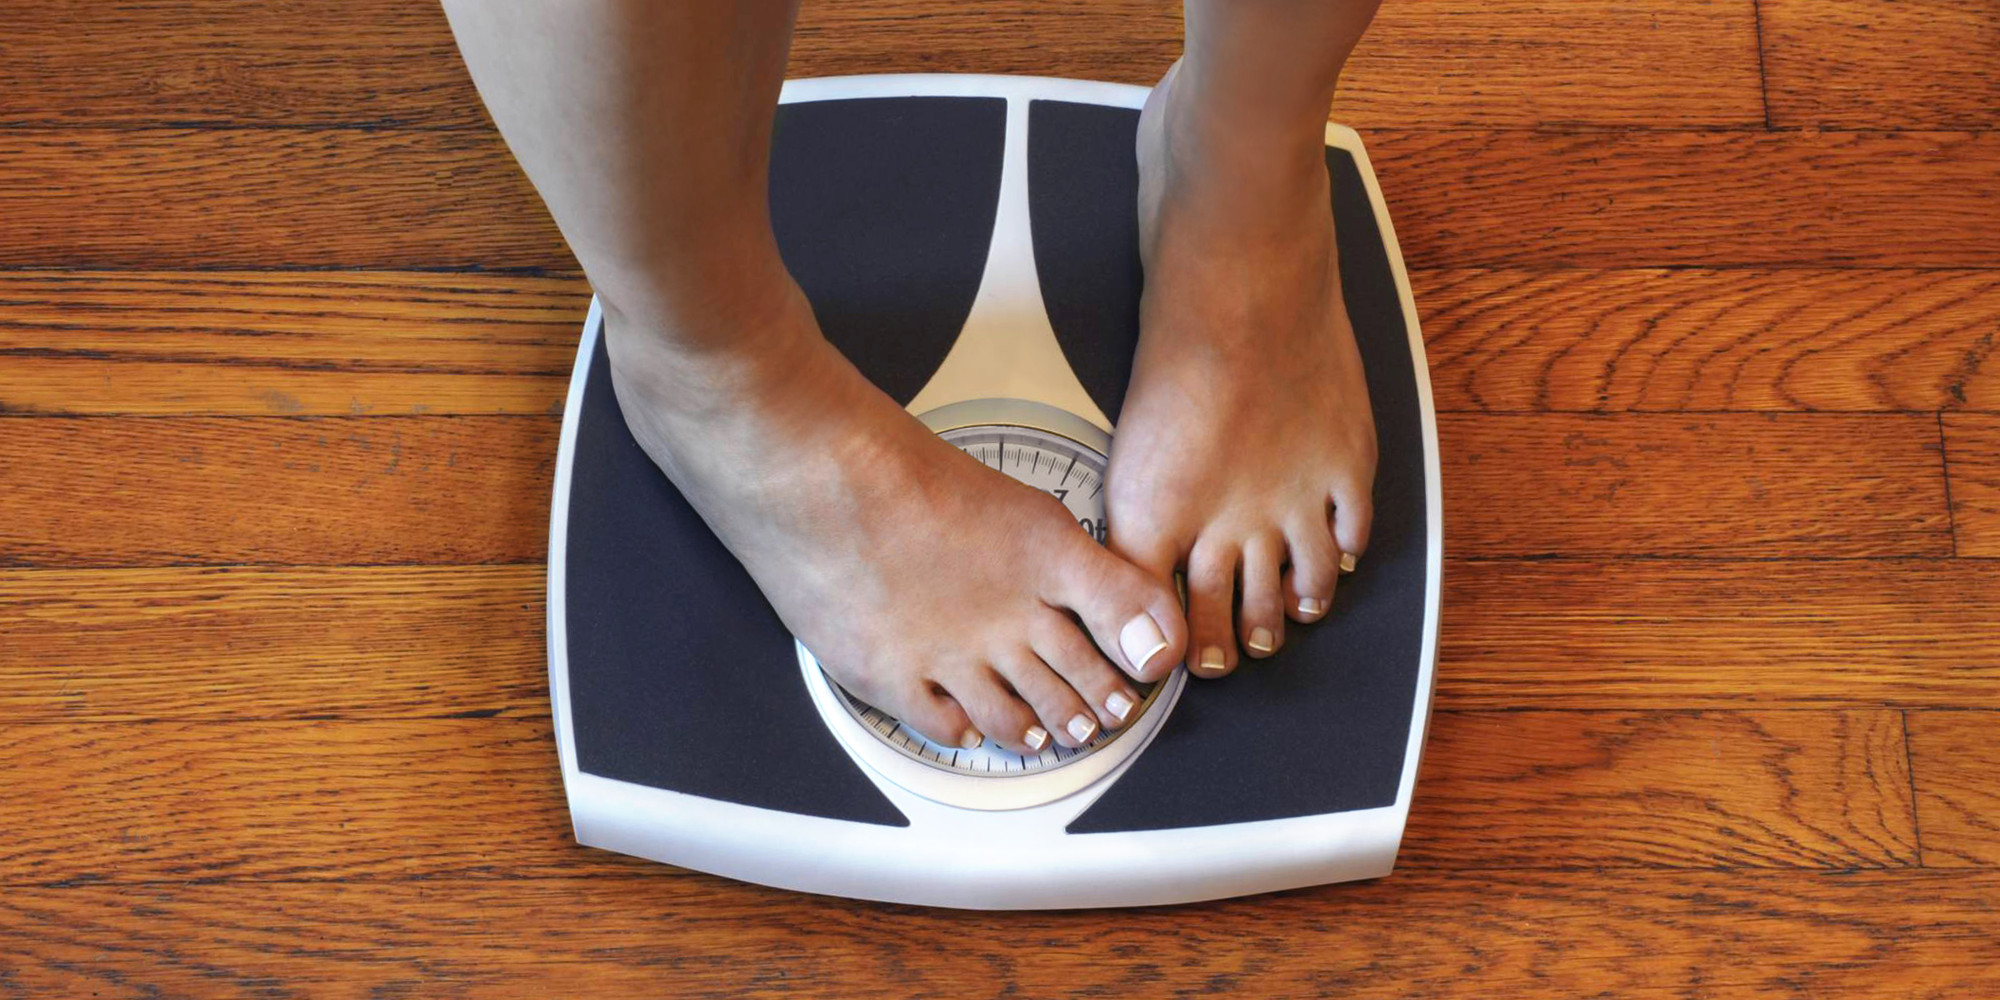 weight-scale-foot-over-numbers